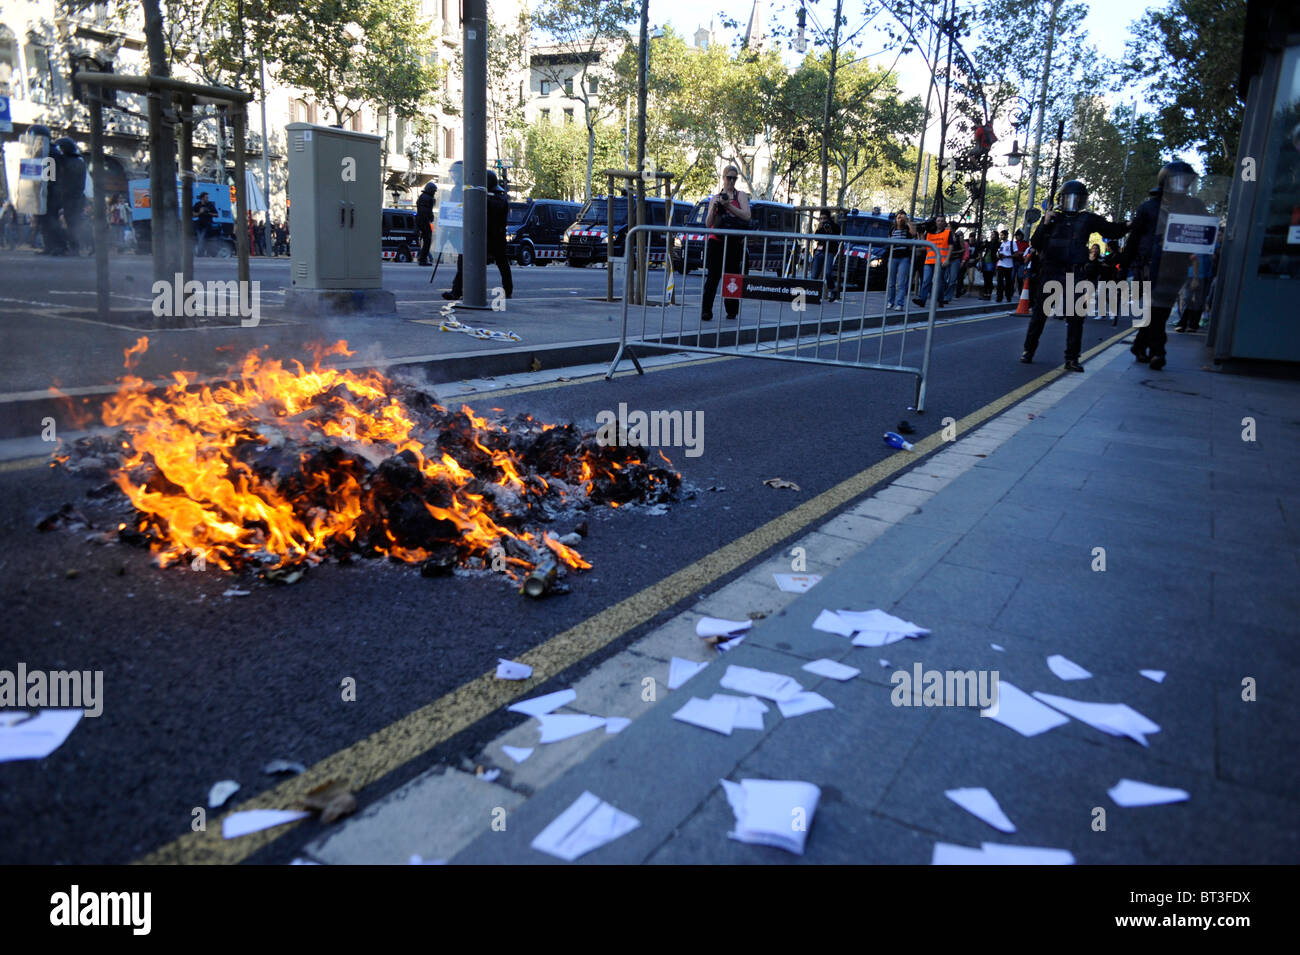 Garbage bags set ablaze in the clashes at the Barcelona city center during the general strike in Spain. - Stock Image